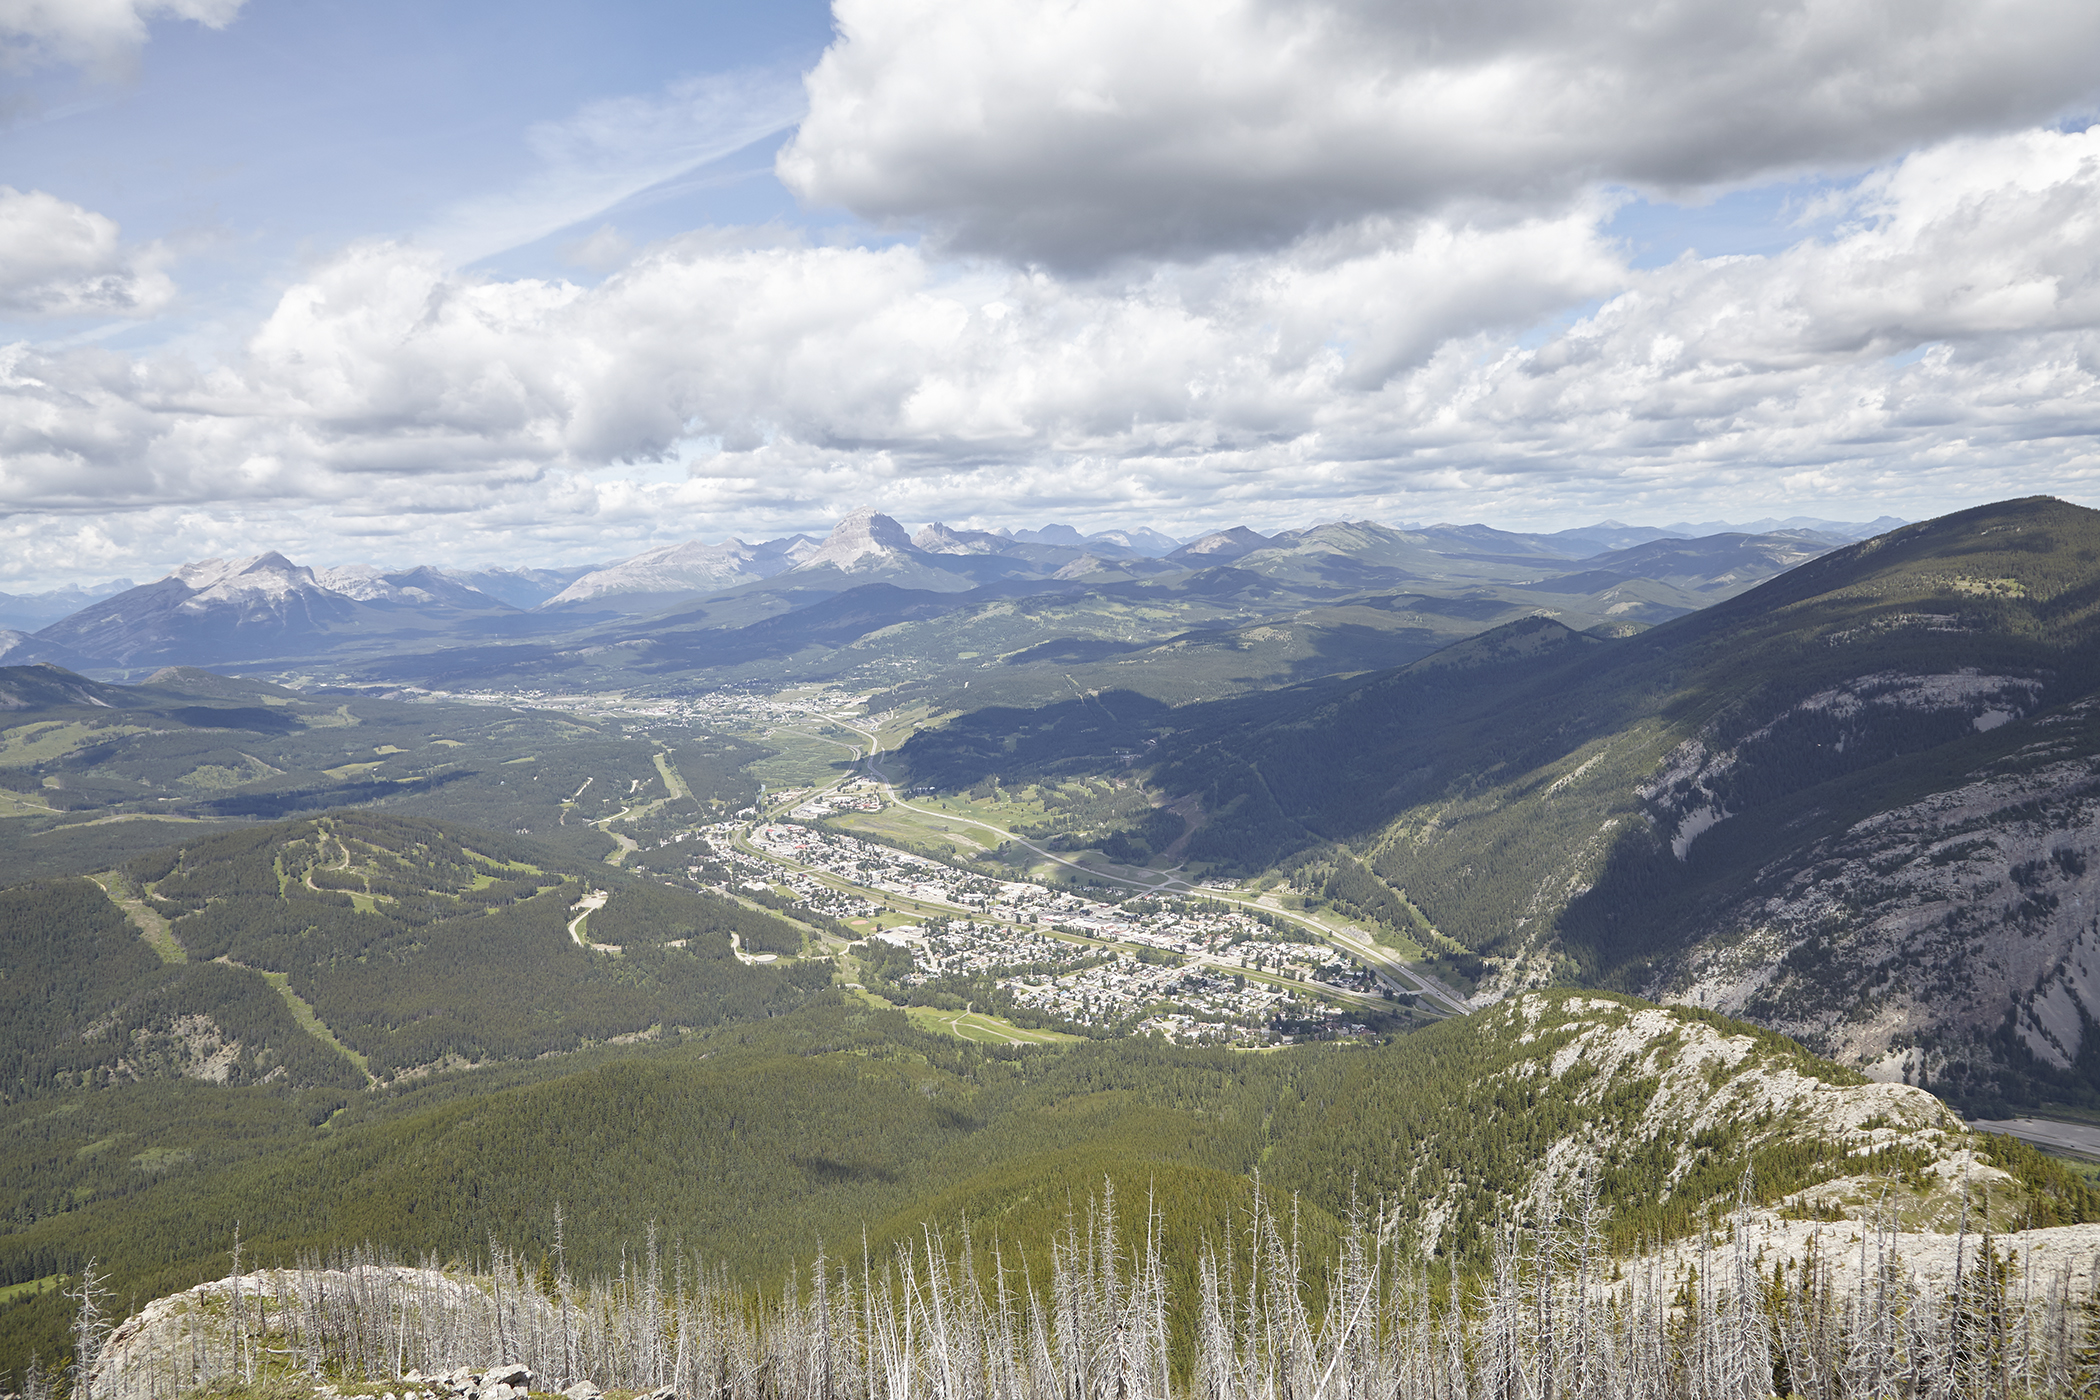 Looking towards Blairemore, Coleman and Crowsnest Mountain from near the summit.